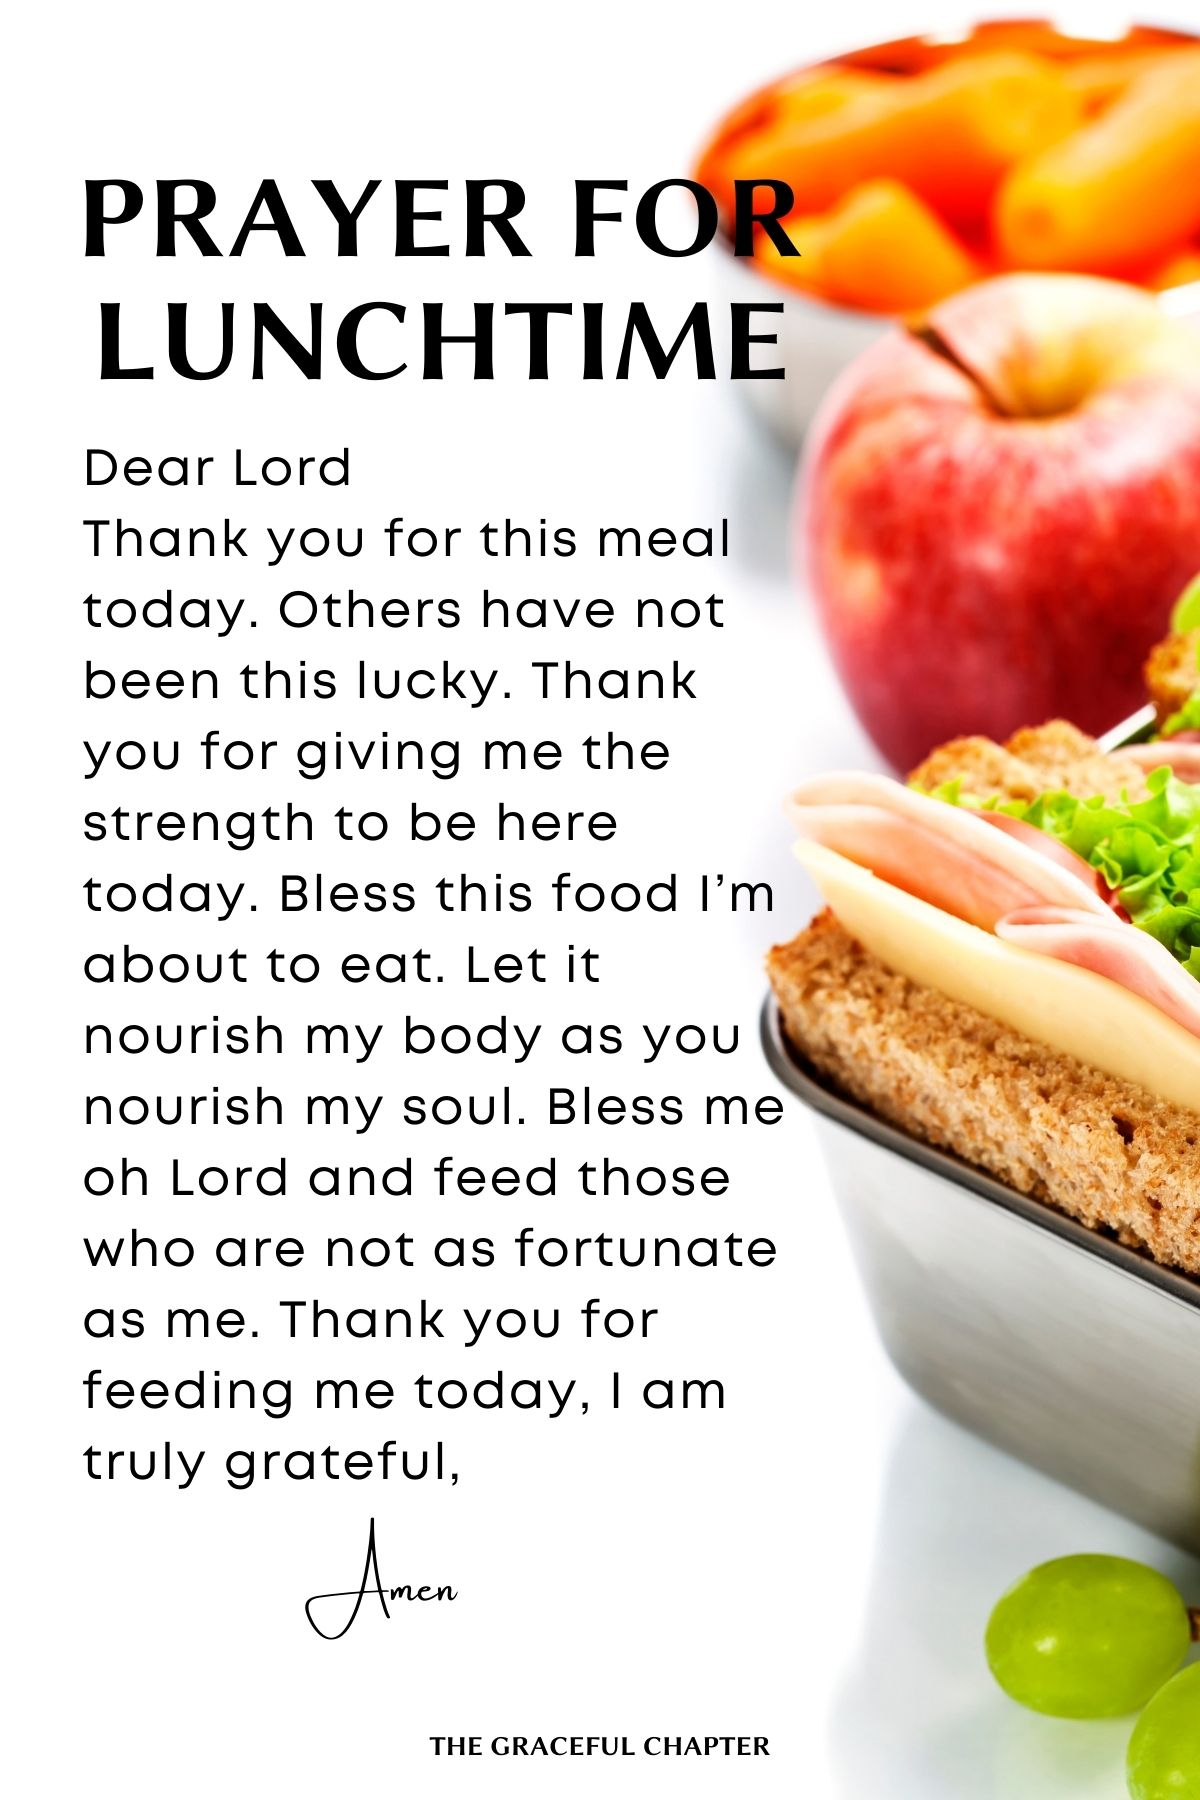 Prayer for lunchtime